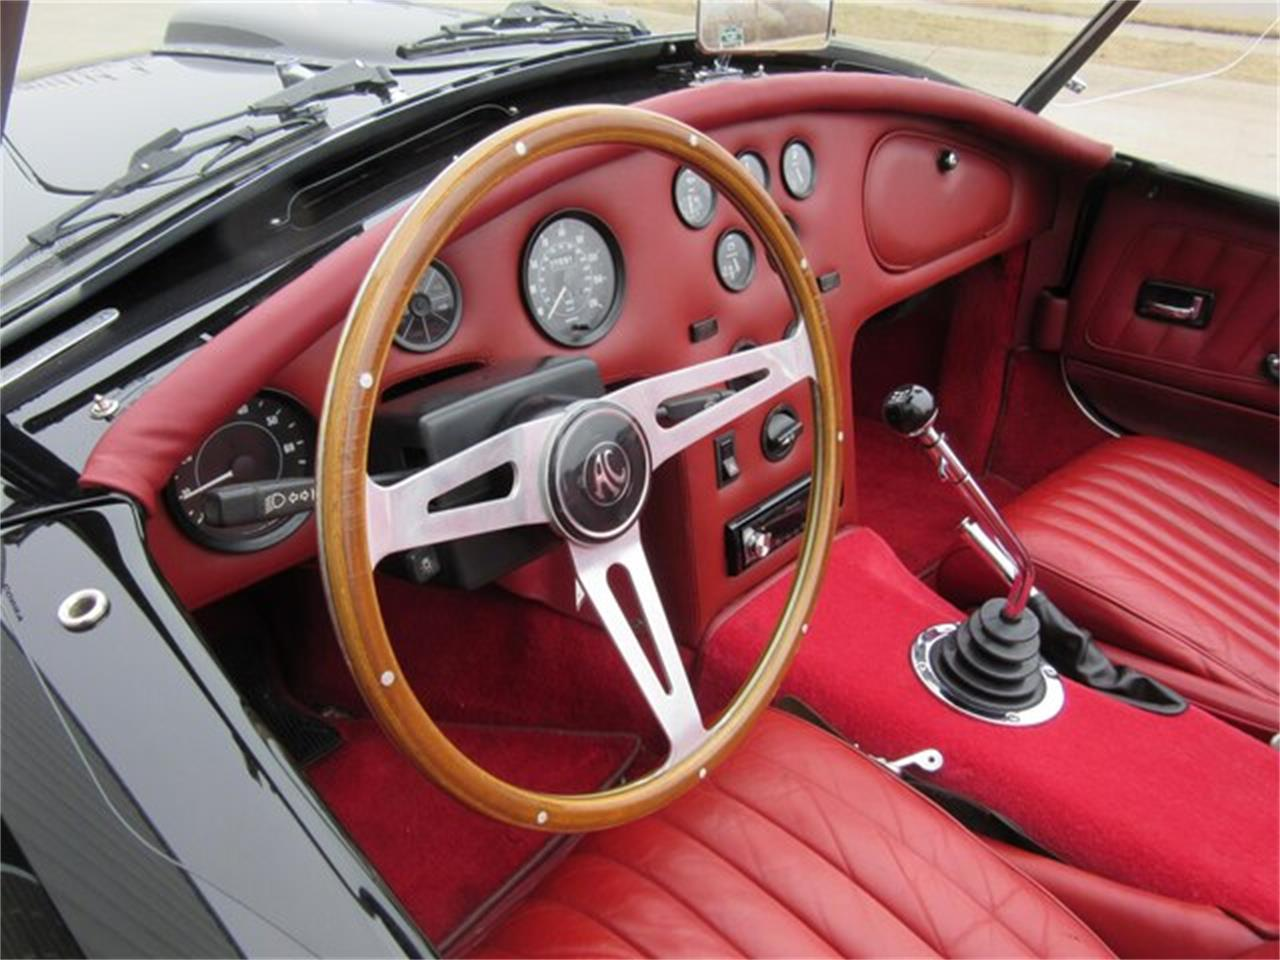 1985 Autokraft Cobra for sale in Greenwood, IN – photo 48